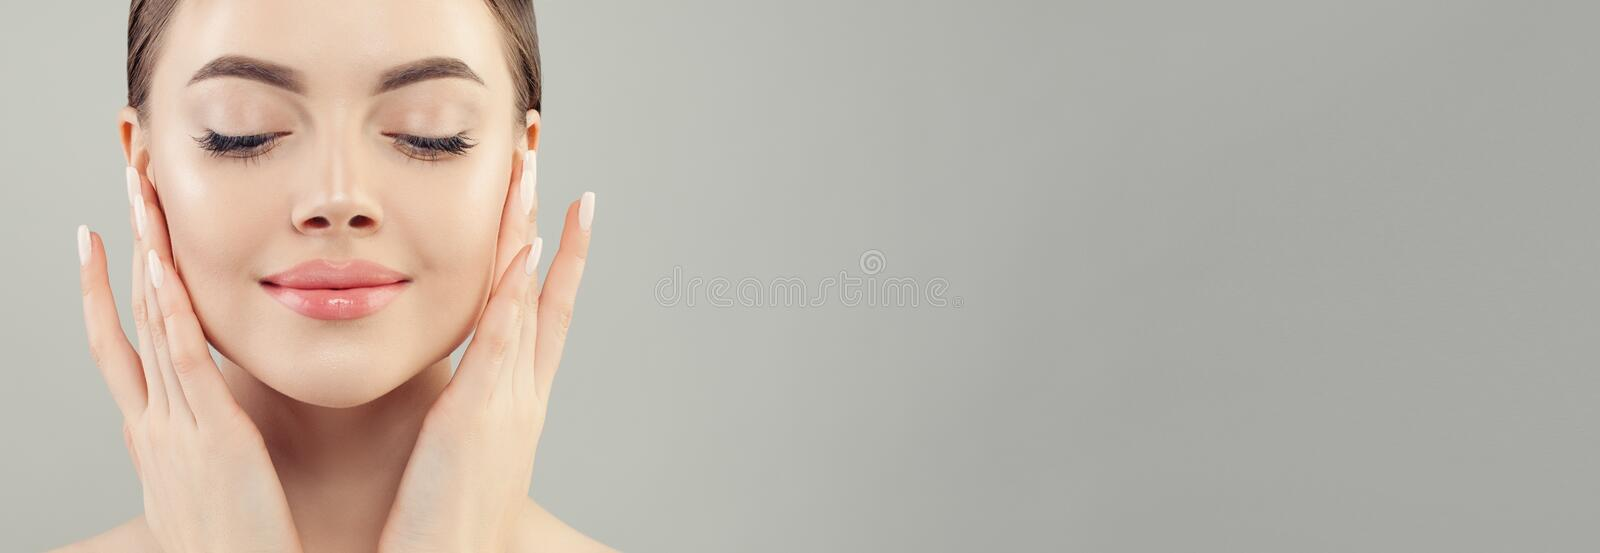 Perfect female face. Beautiful model with clear skin closeup portrait on banner background stock photo